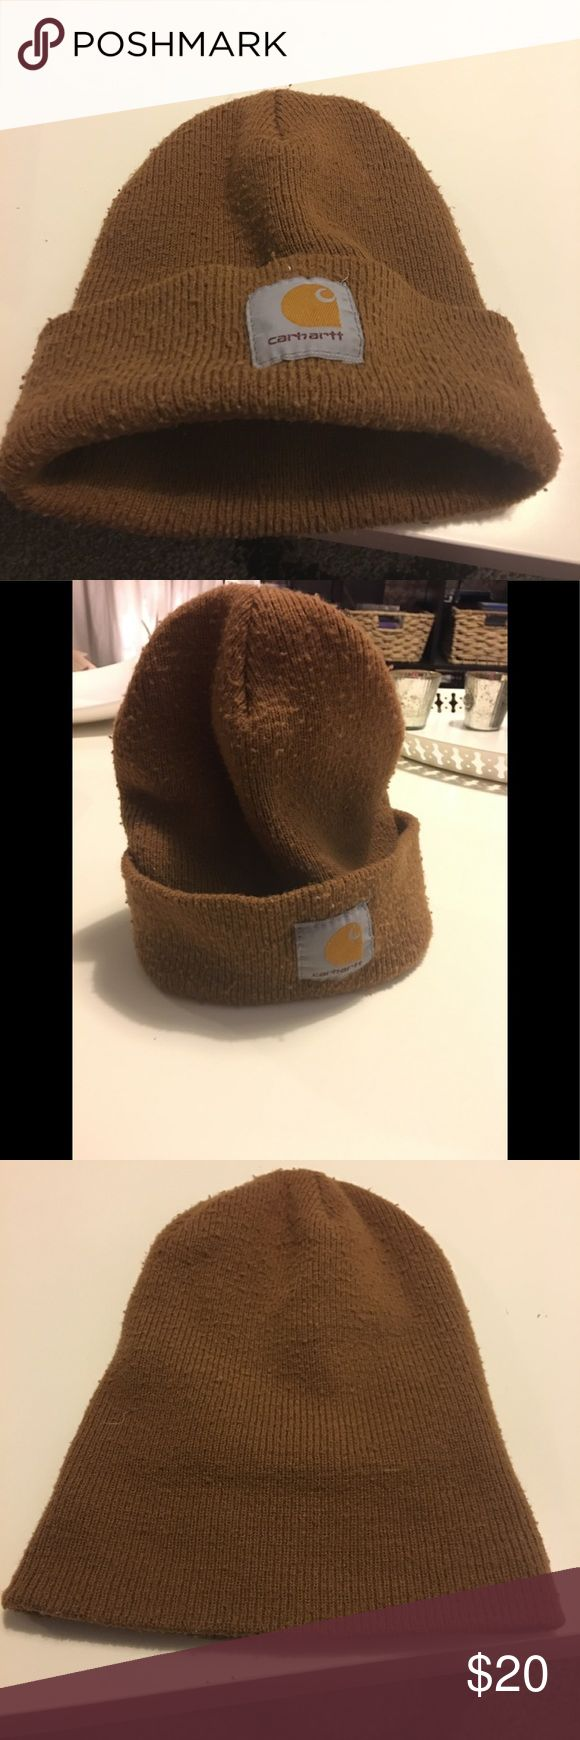 Carhartt cap One size fits all has some piling but no holes or stains Carhartt Accessories Hats